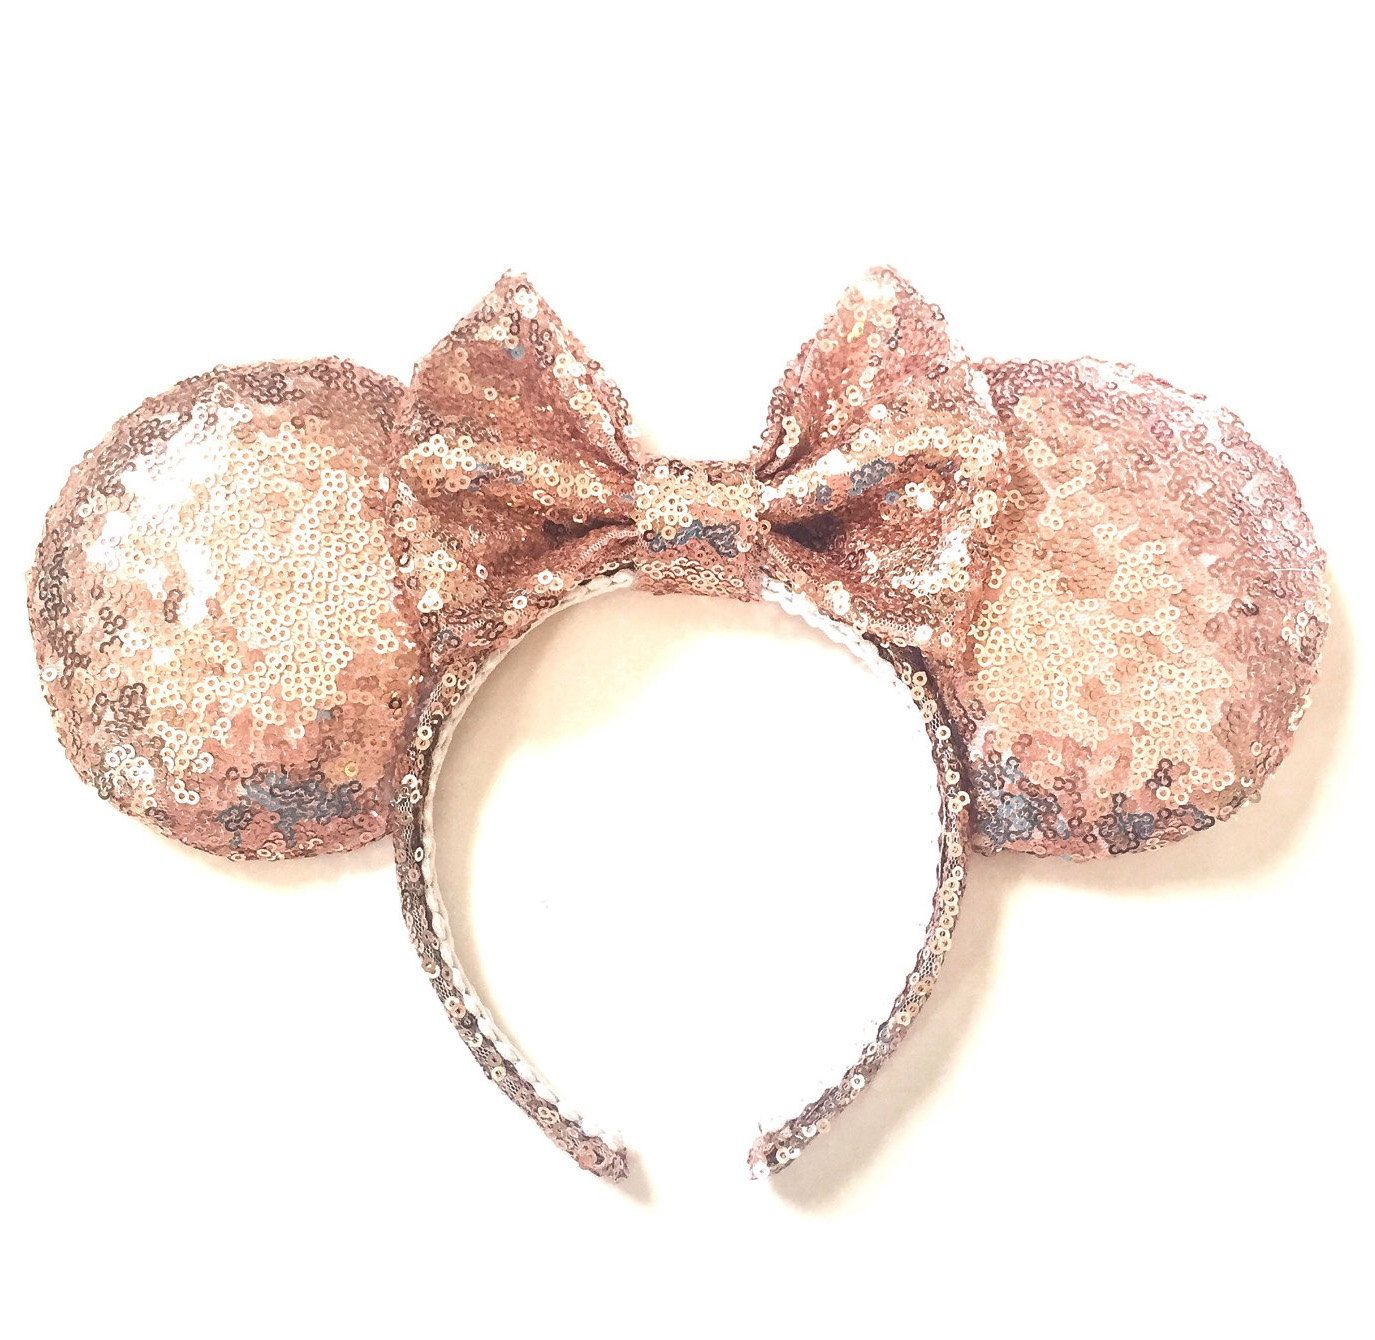 rose gold minnie ears want disney style rose gold mickey ears rose gold minnie ears. Black Bedroom Furniture Sets. Home Design Ideas